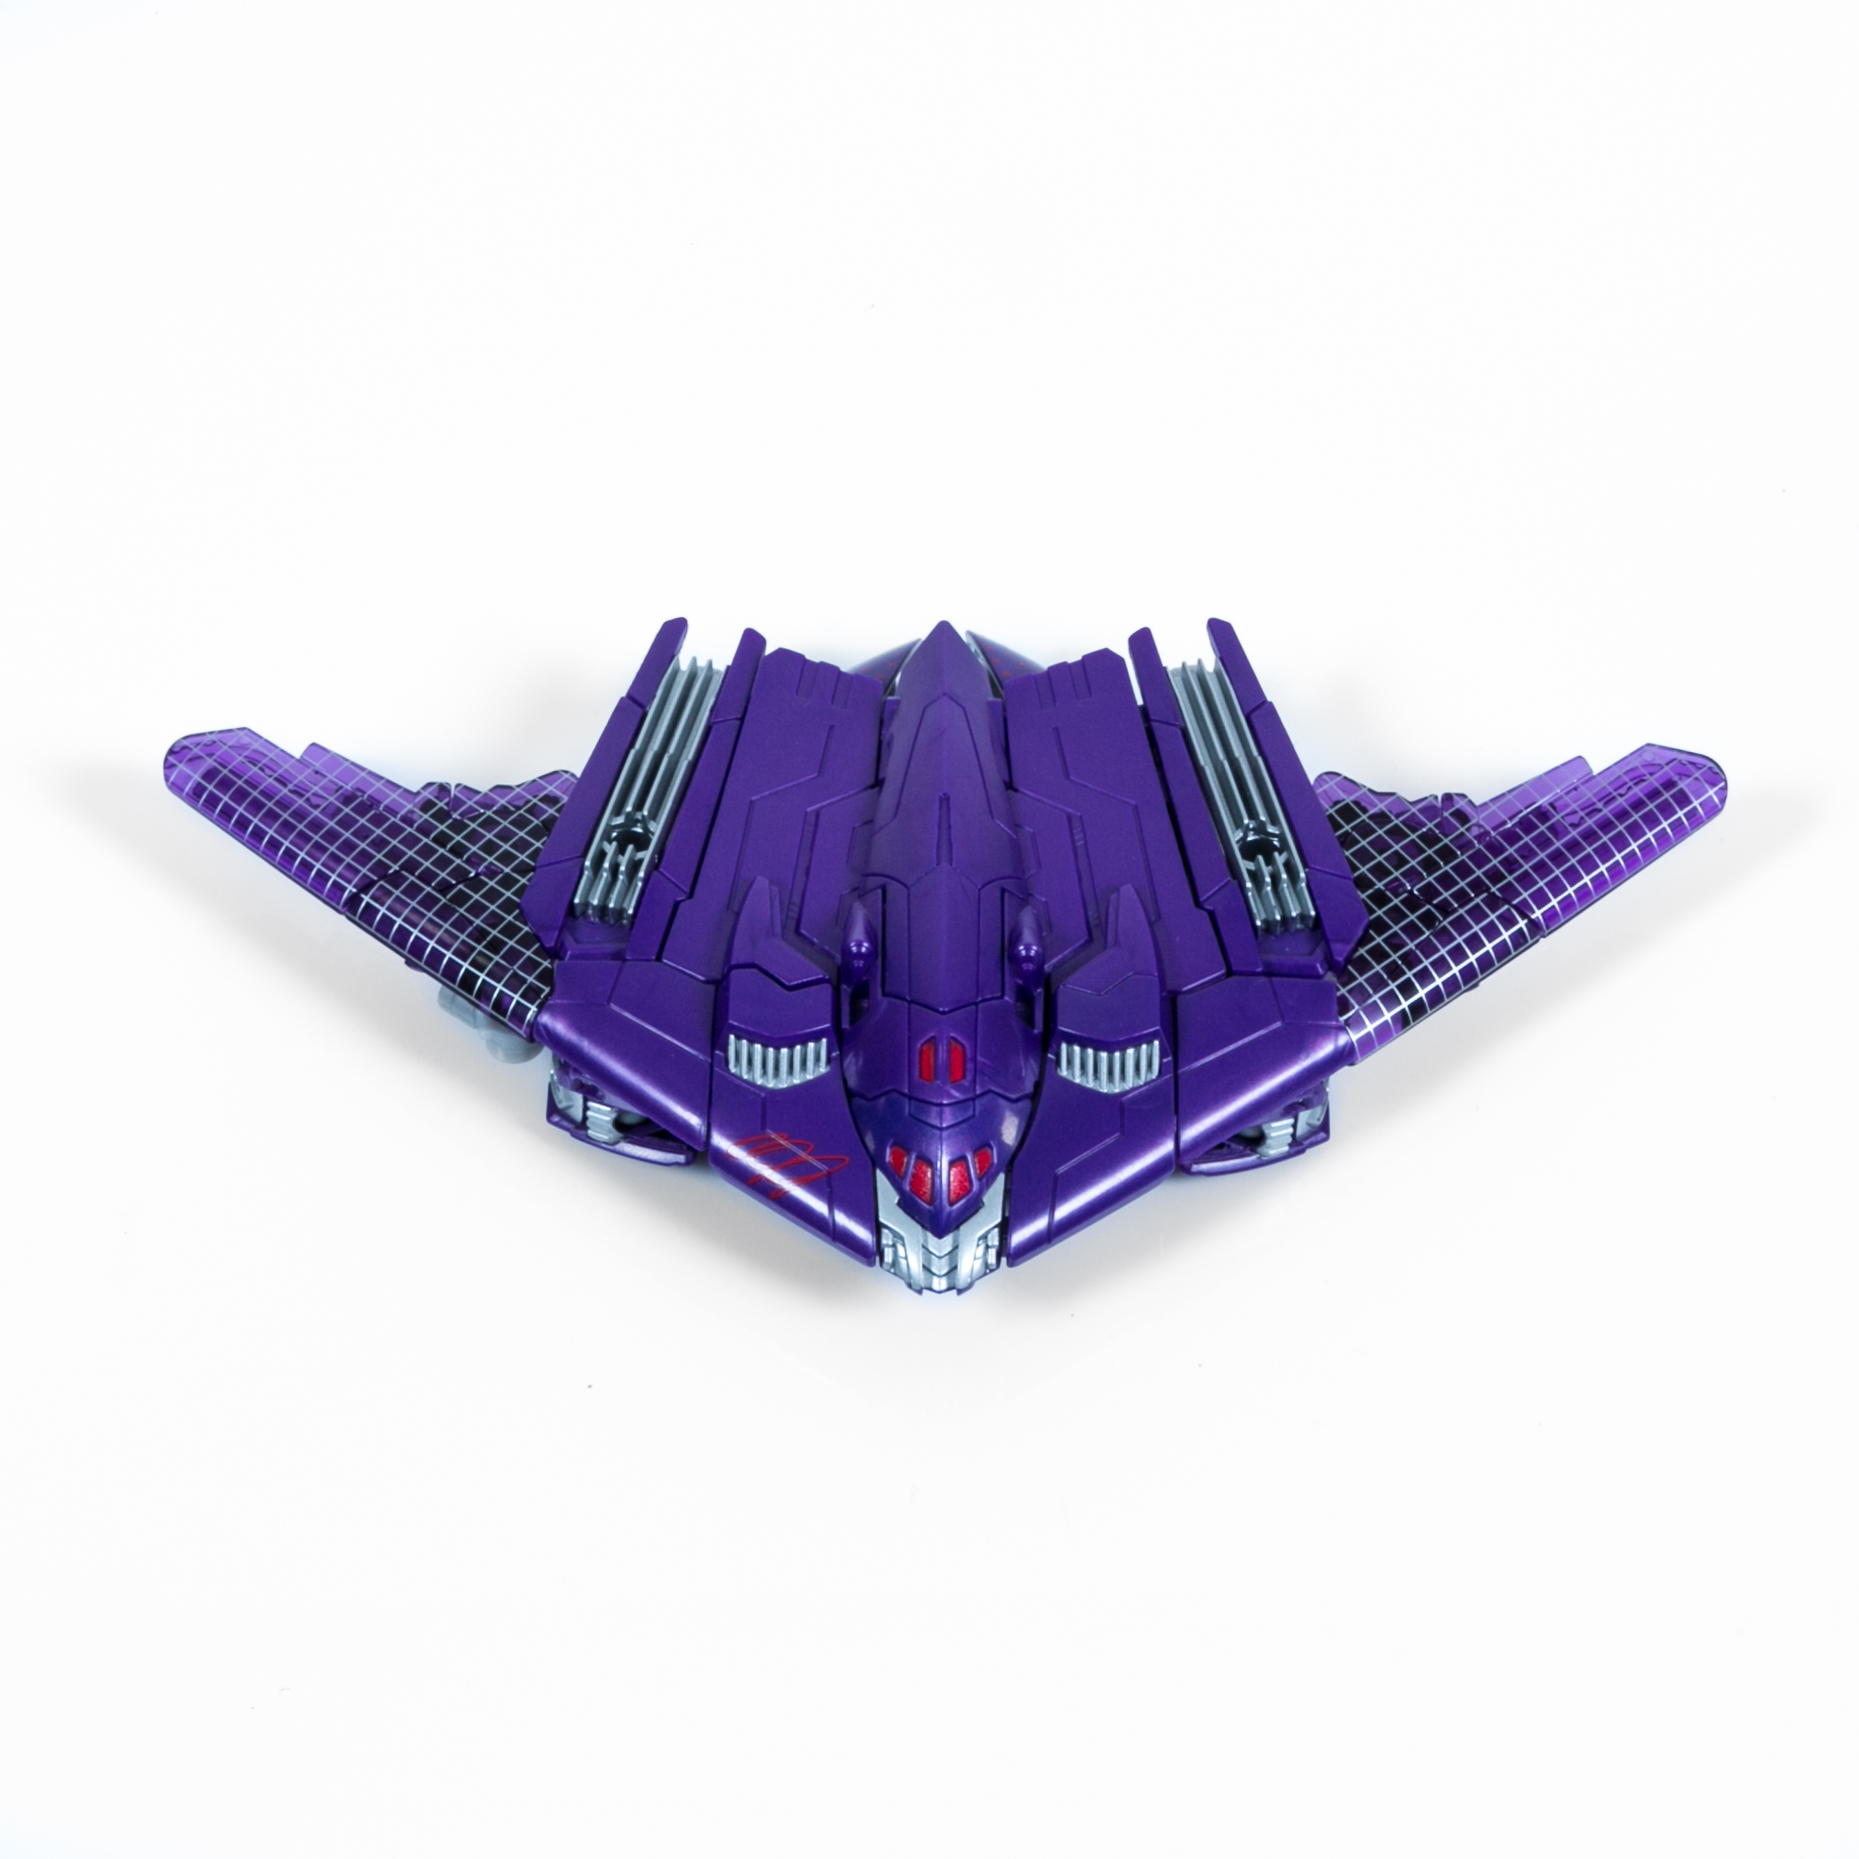 Megatron in jet form